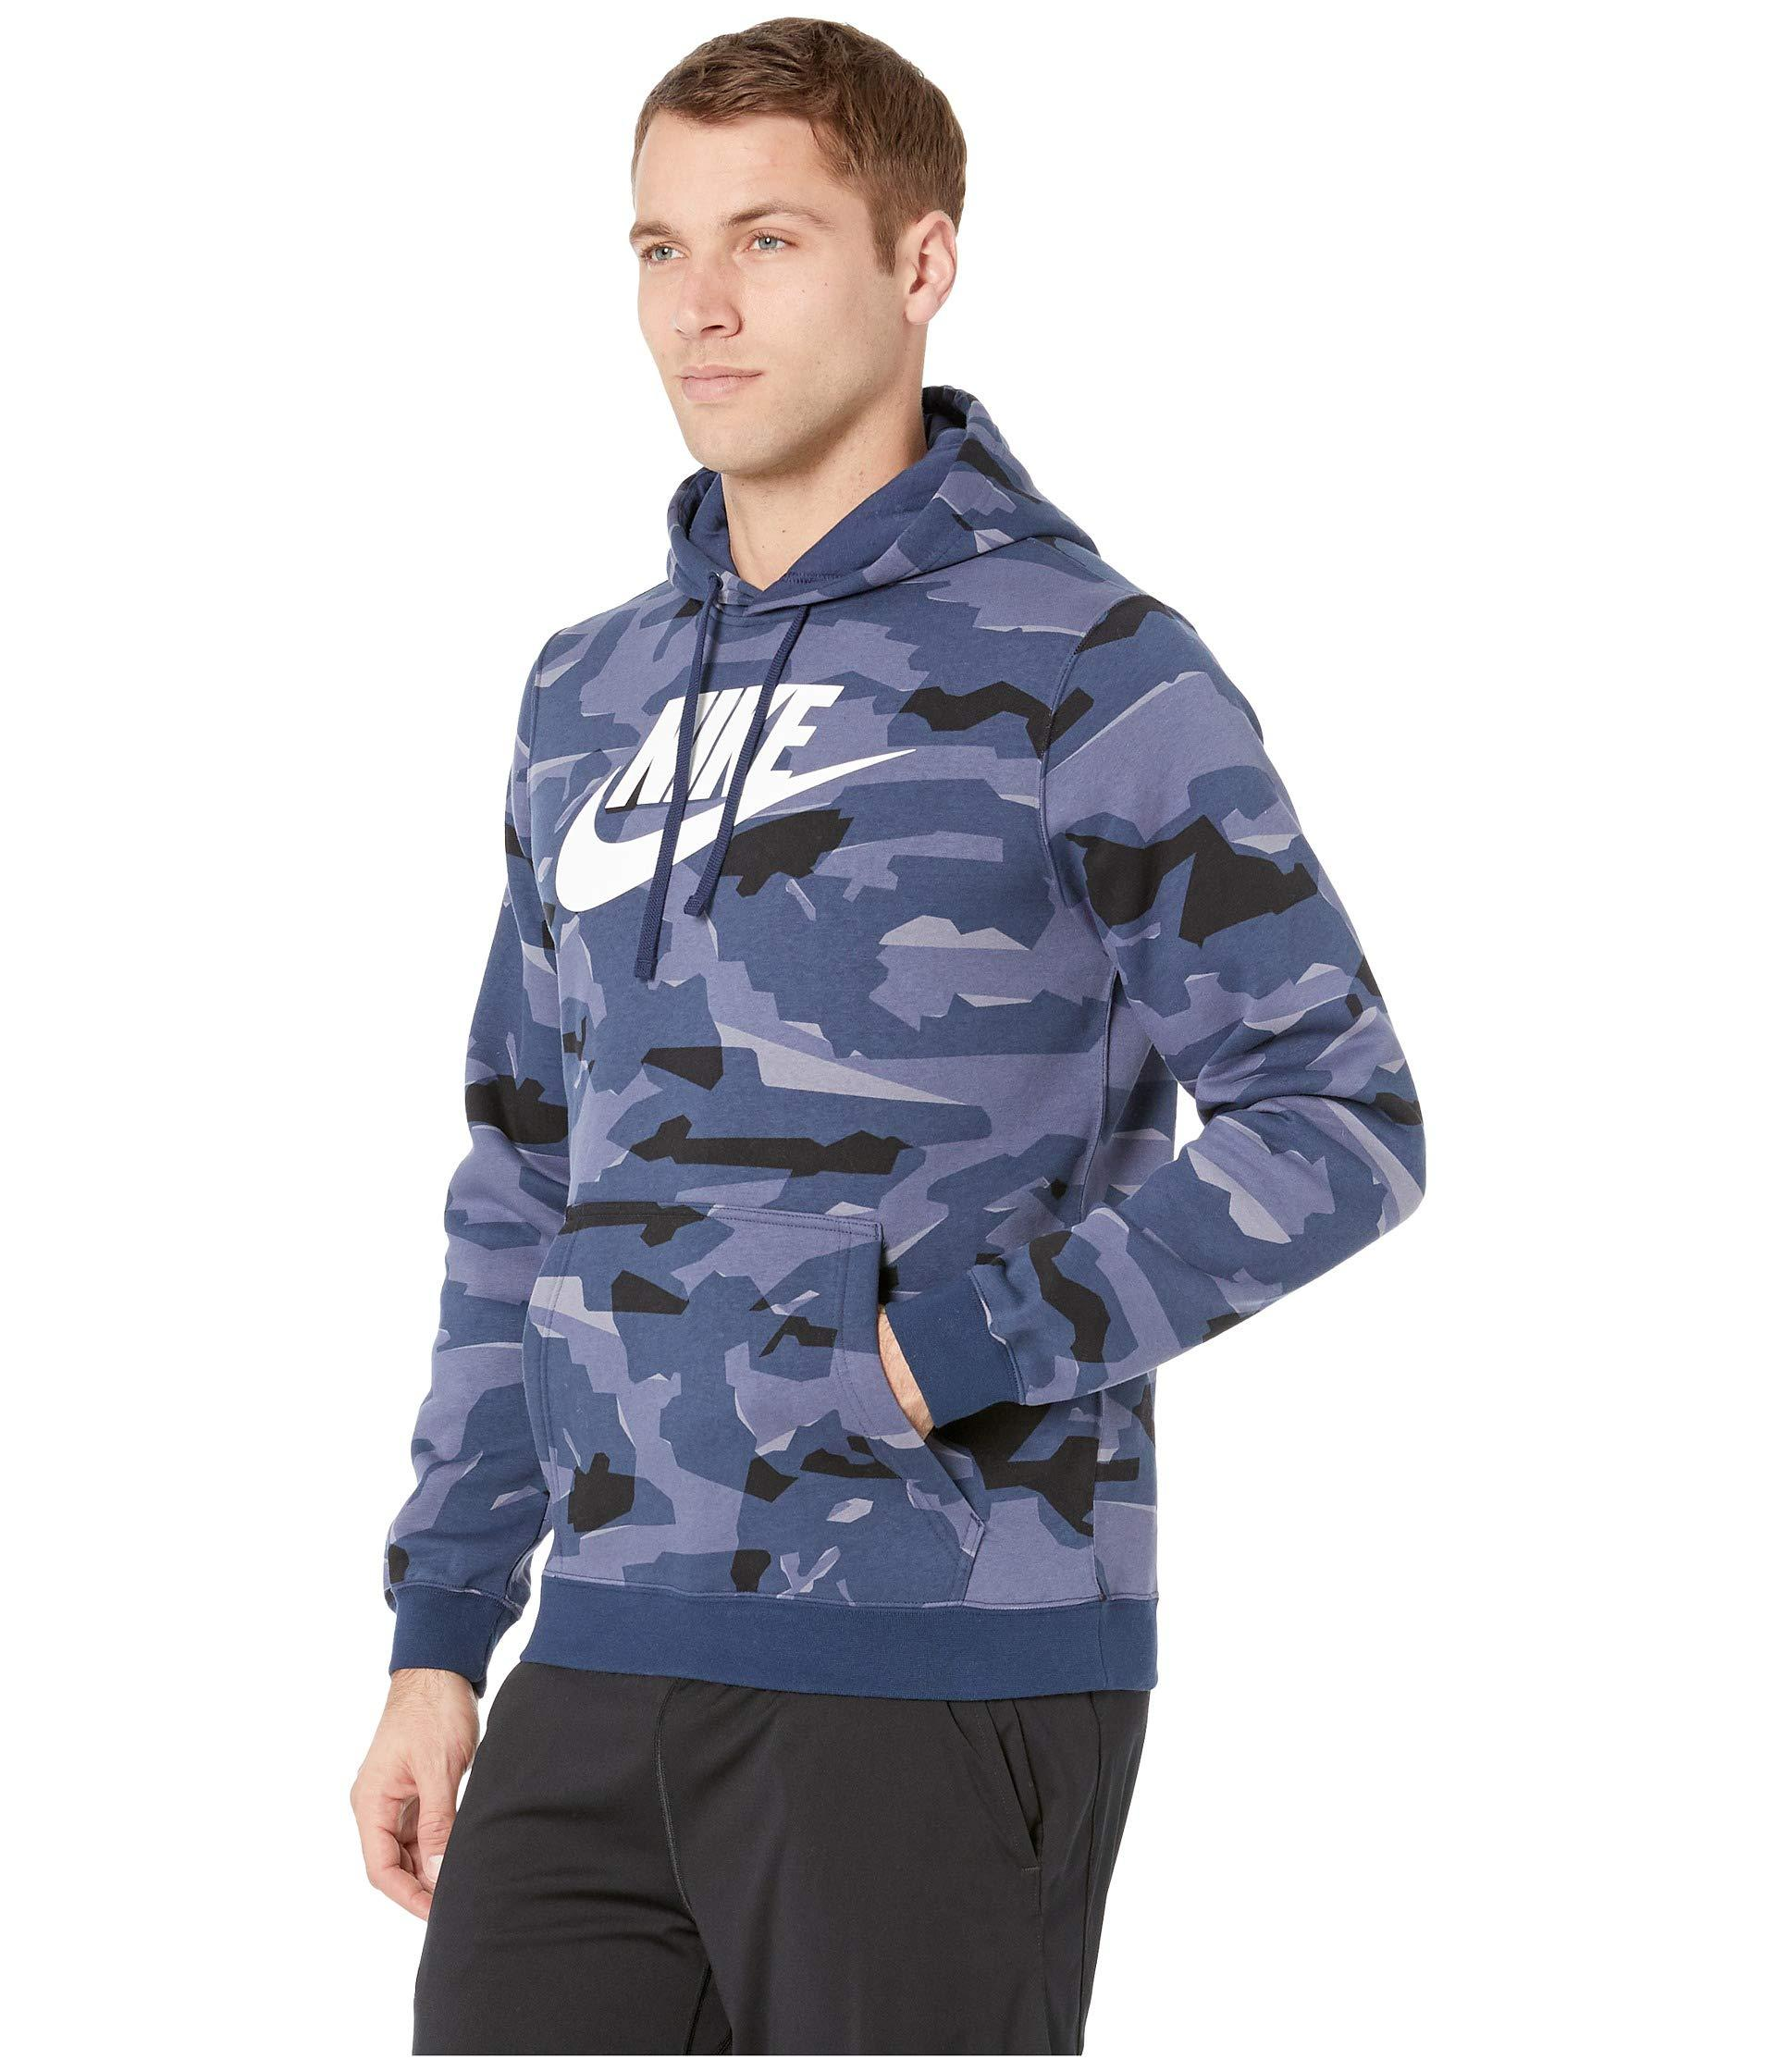 ba11b92d176e Lyst - Nike Nsw Club Camo Pullover Hoodie in Blue for Men